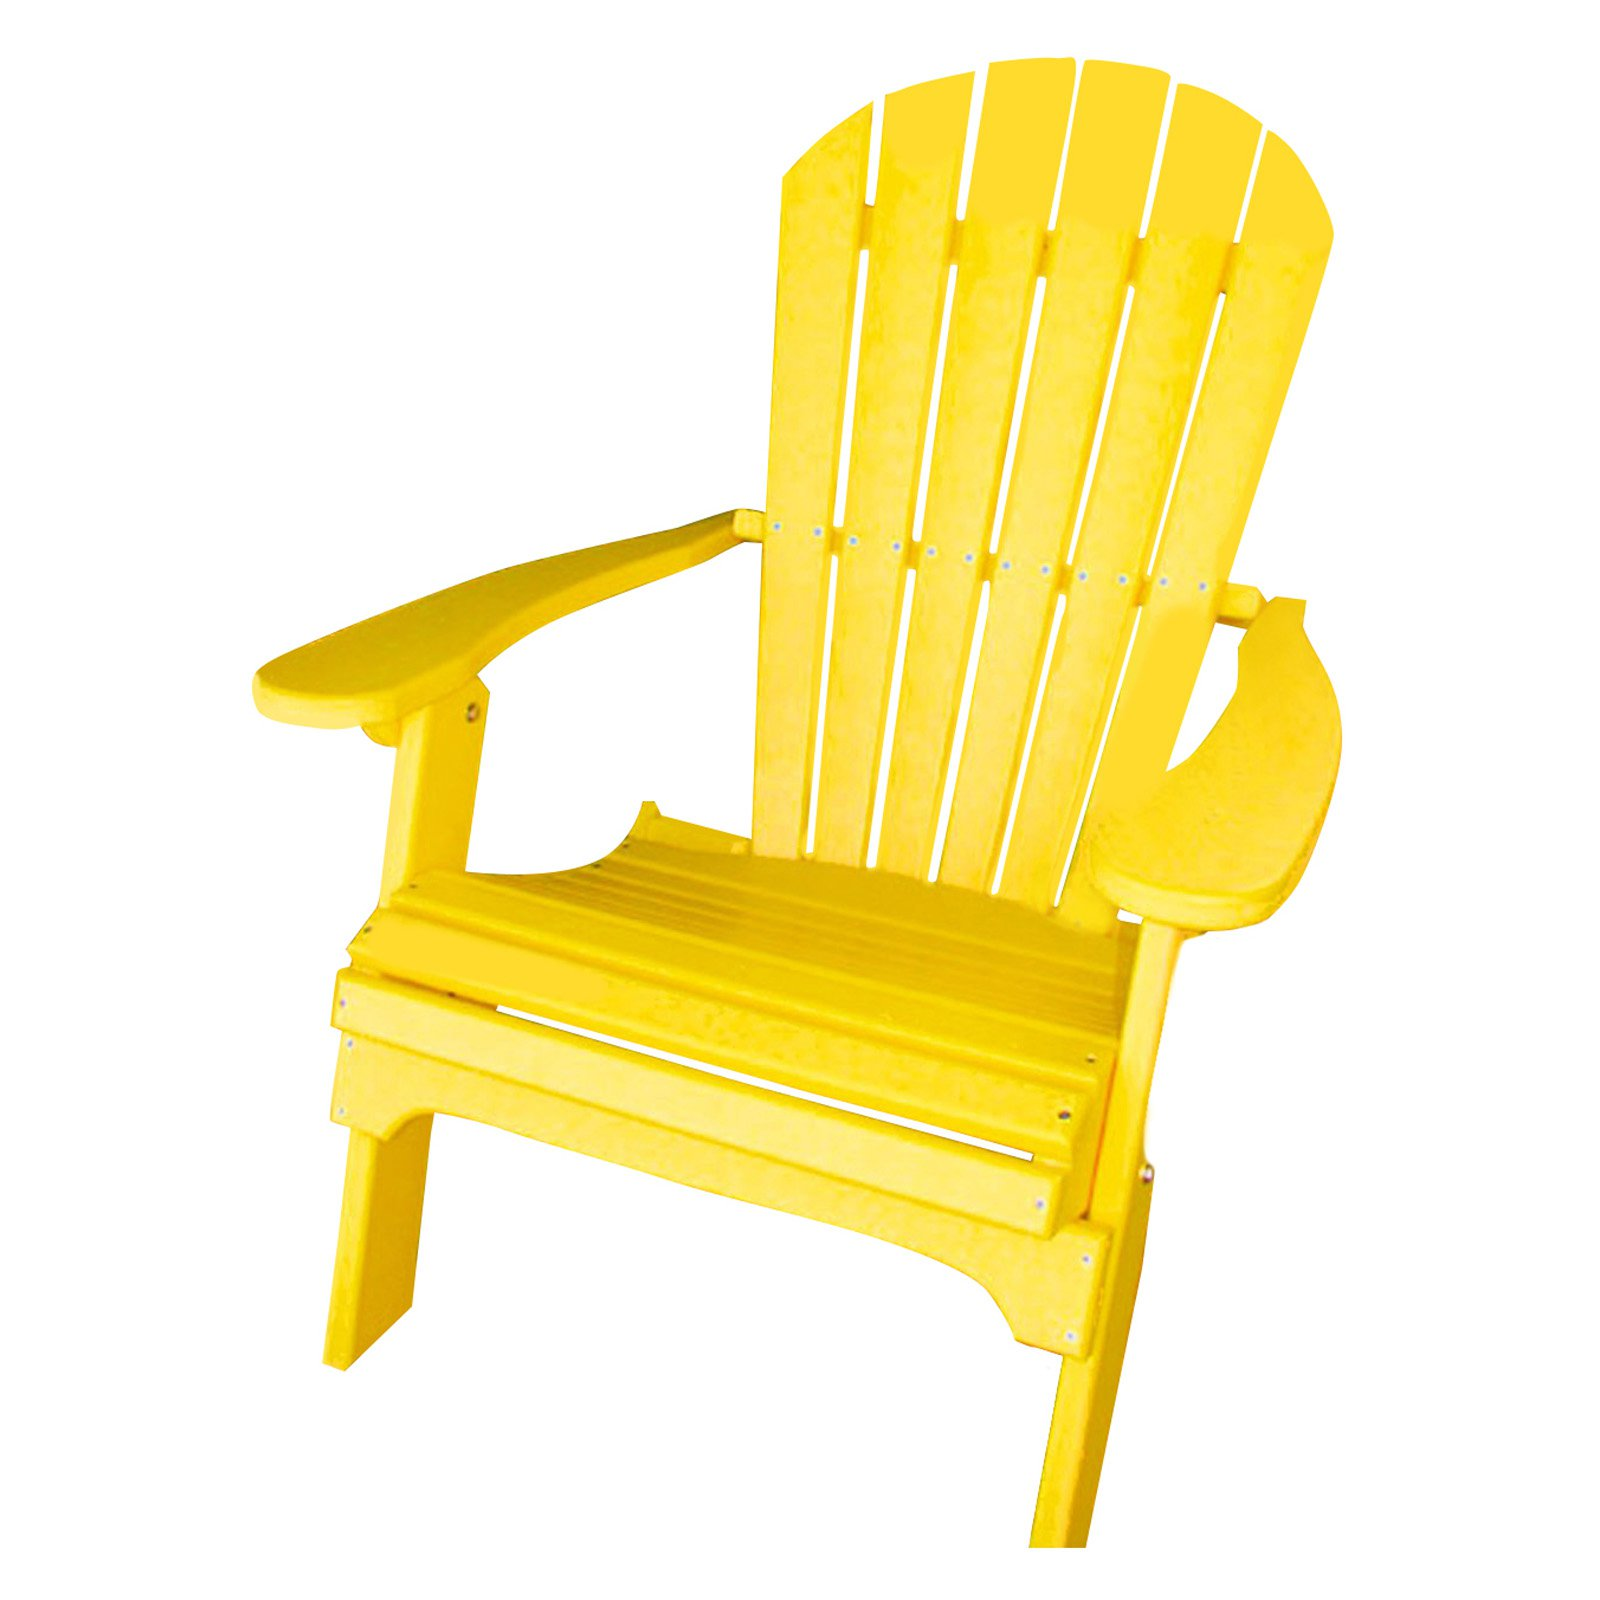 Phat Tommy Recycled Plastic Folding Adirondack Chair by Buyers Choice